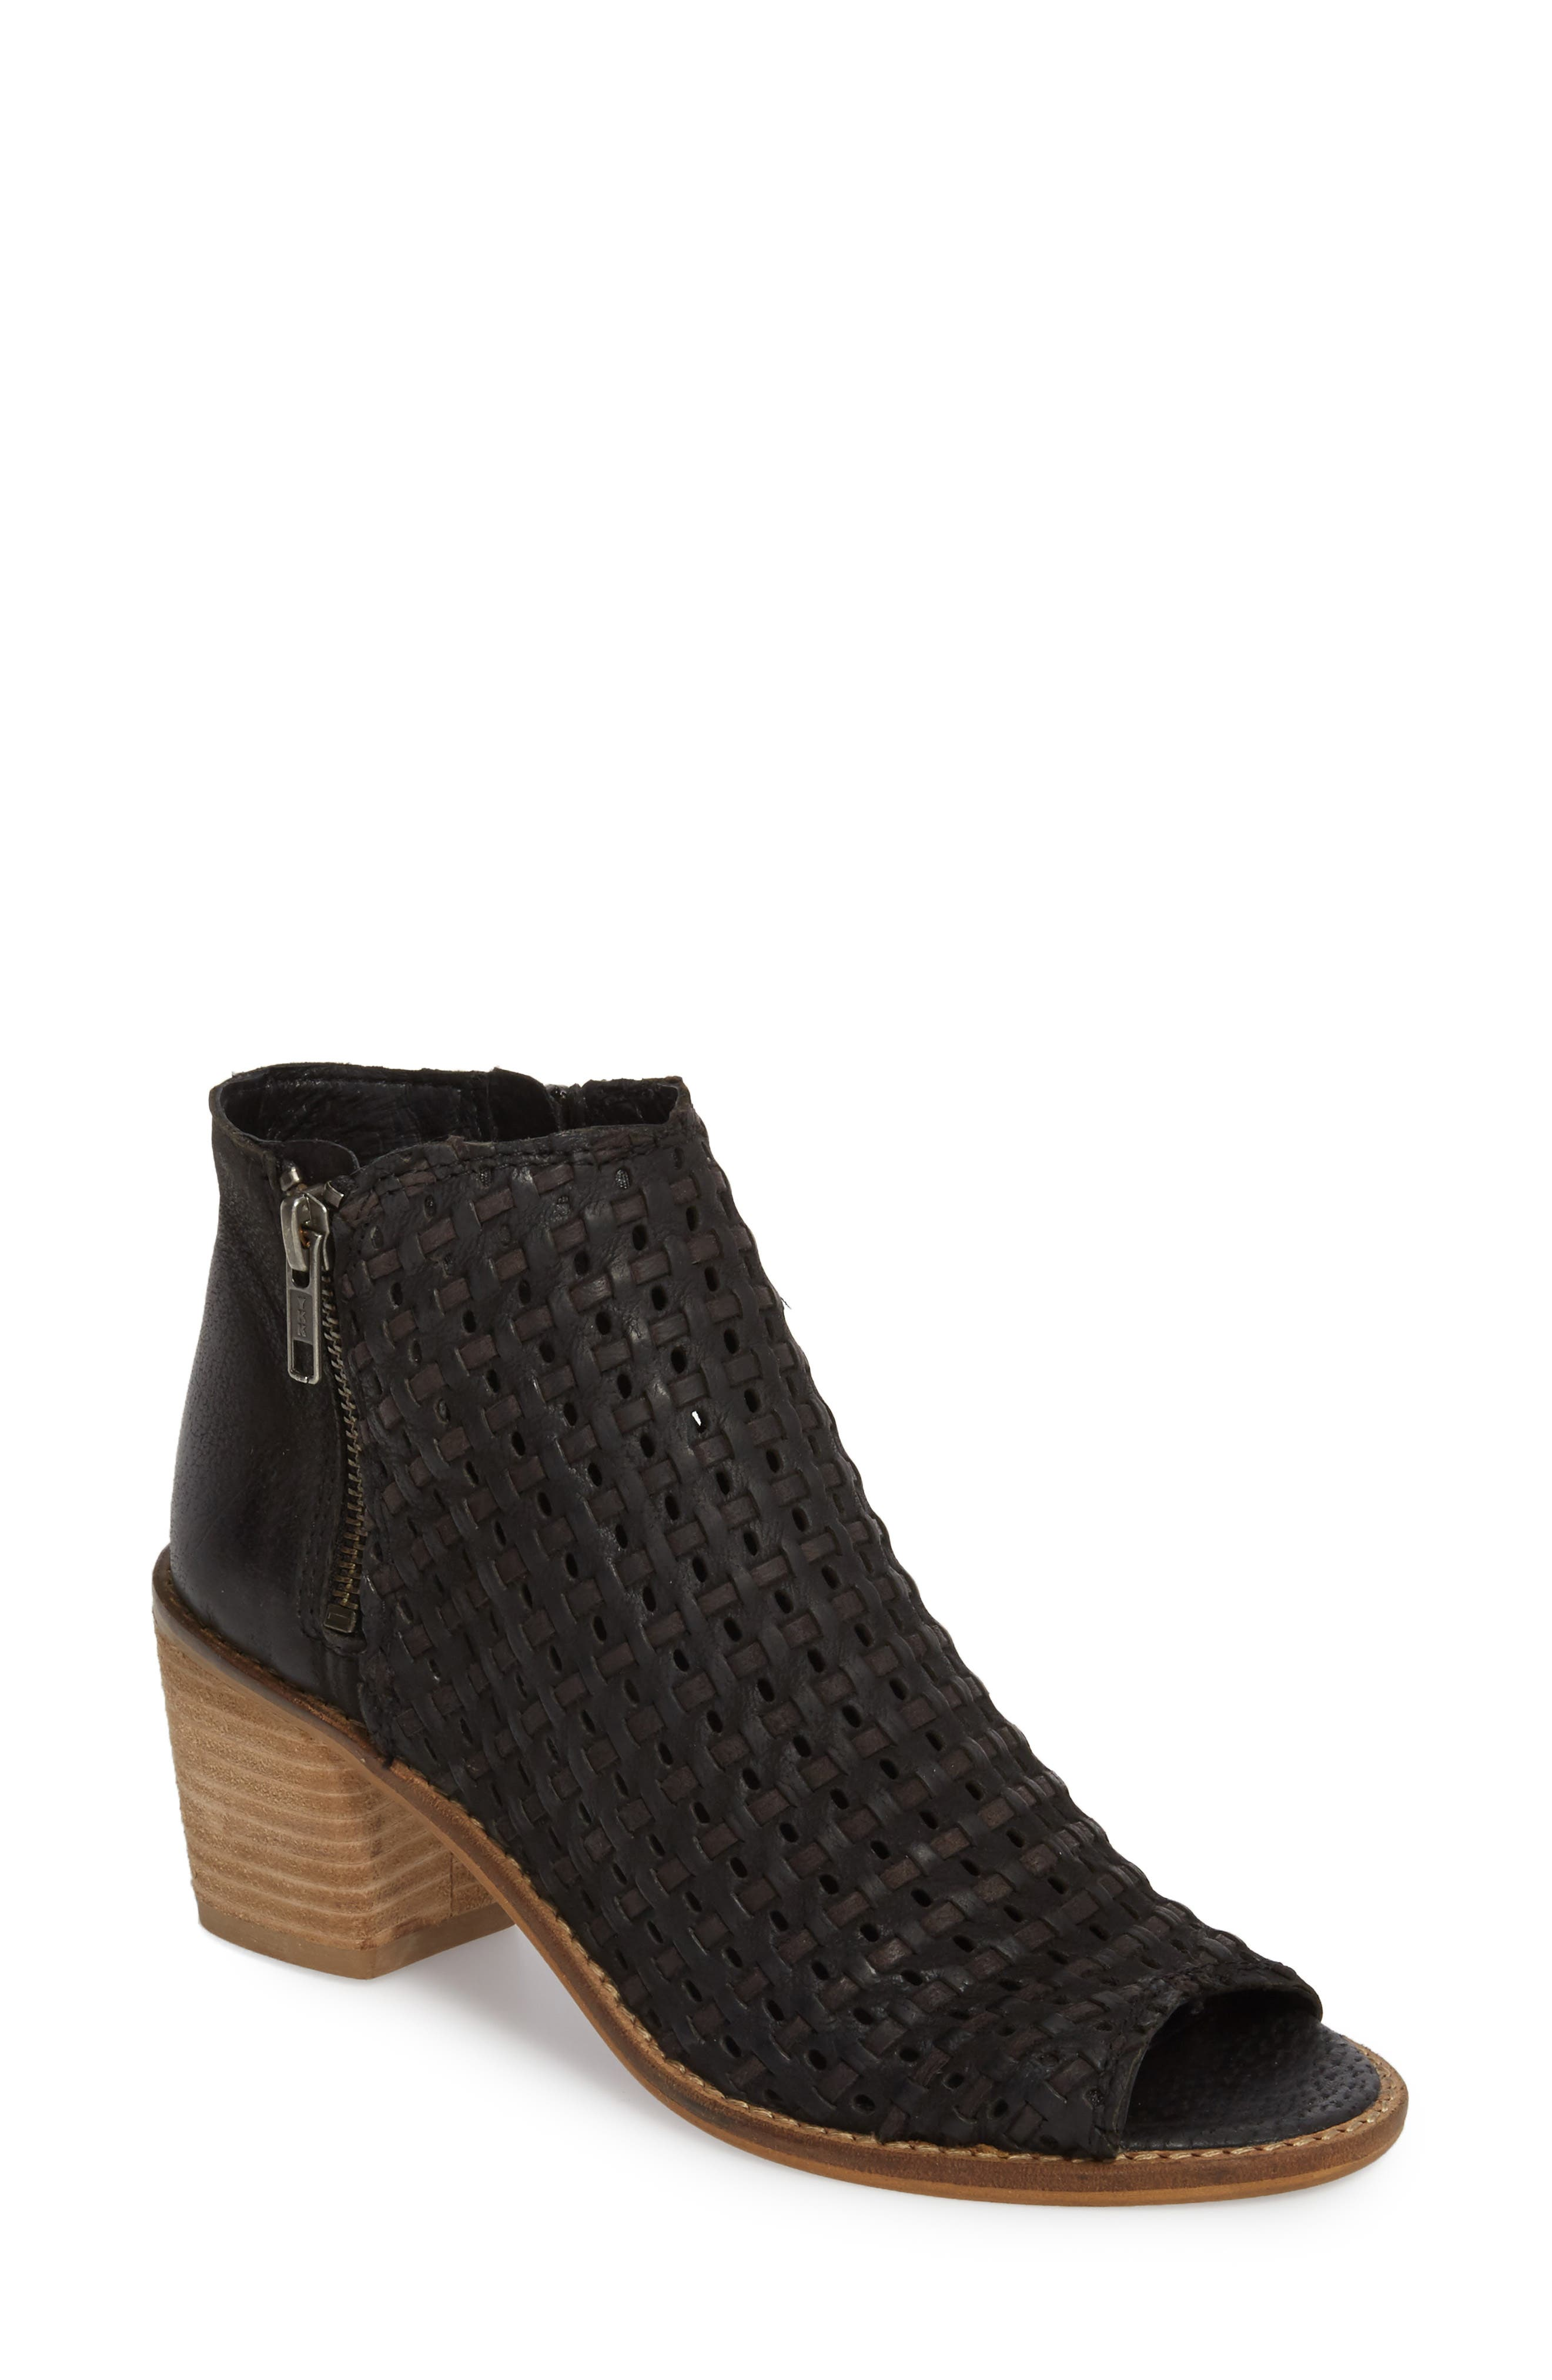 Waterfront Peep Toe Bootie,                         Main,                         color, BLACK LEATHER